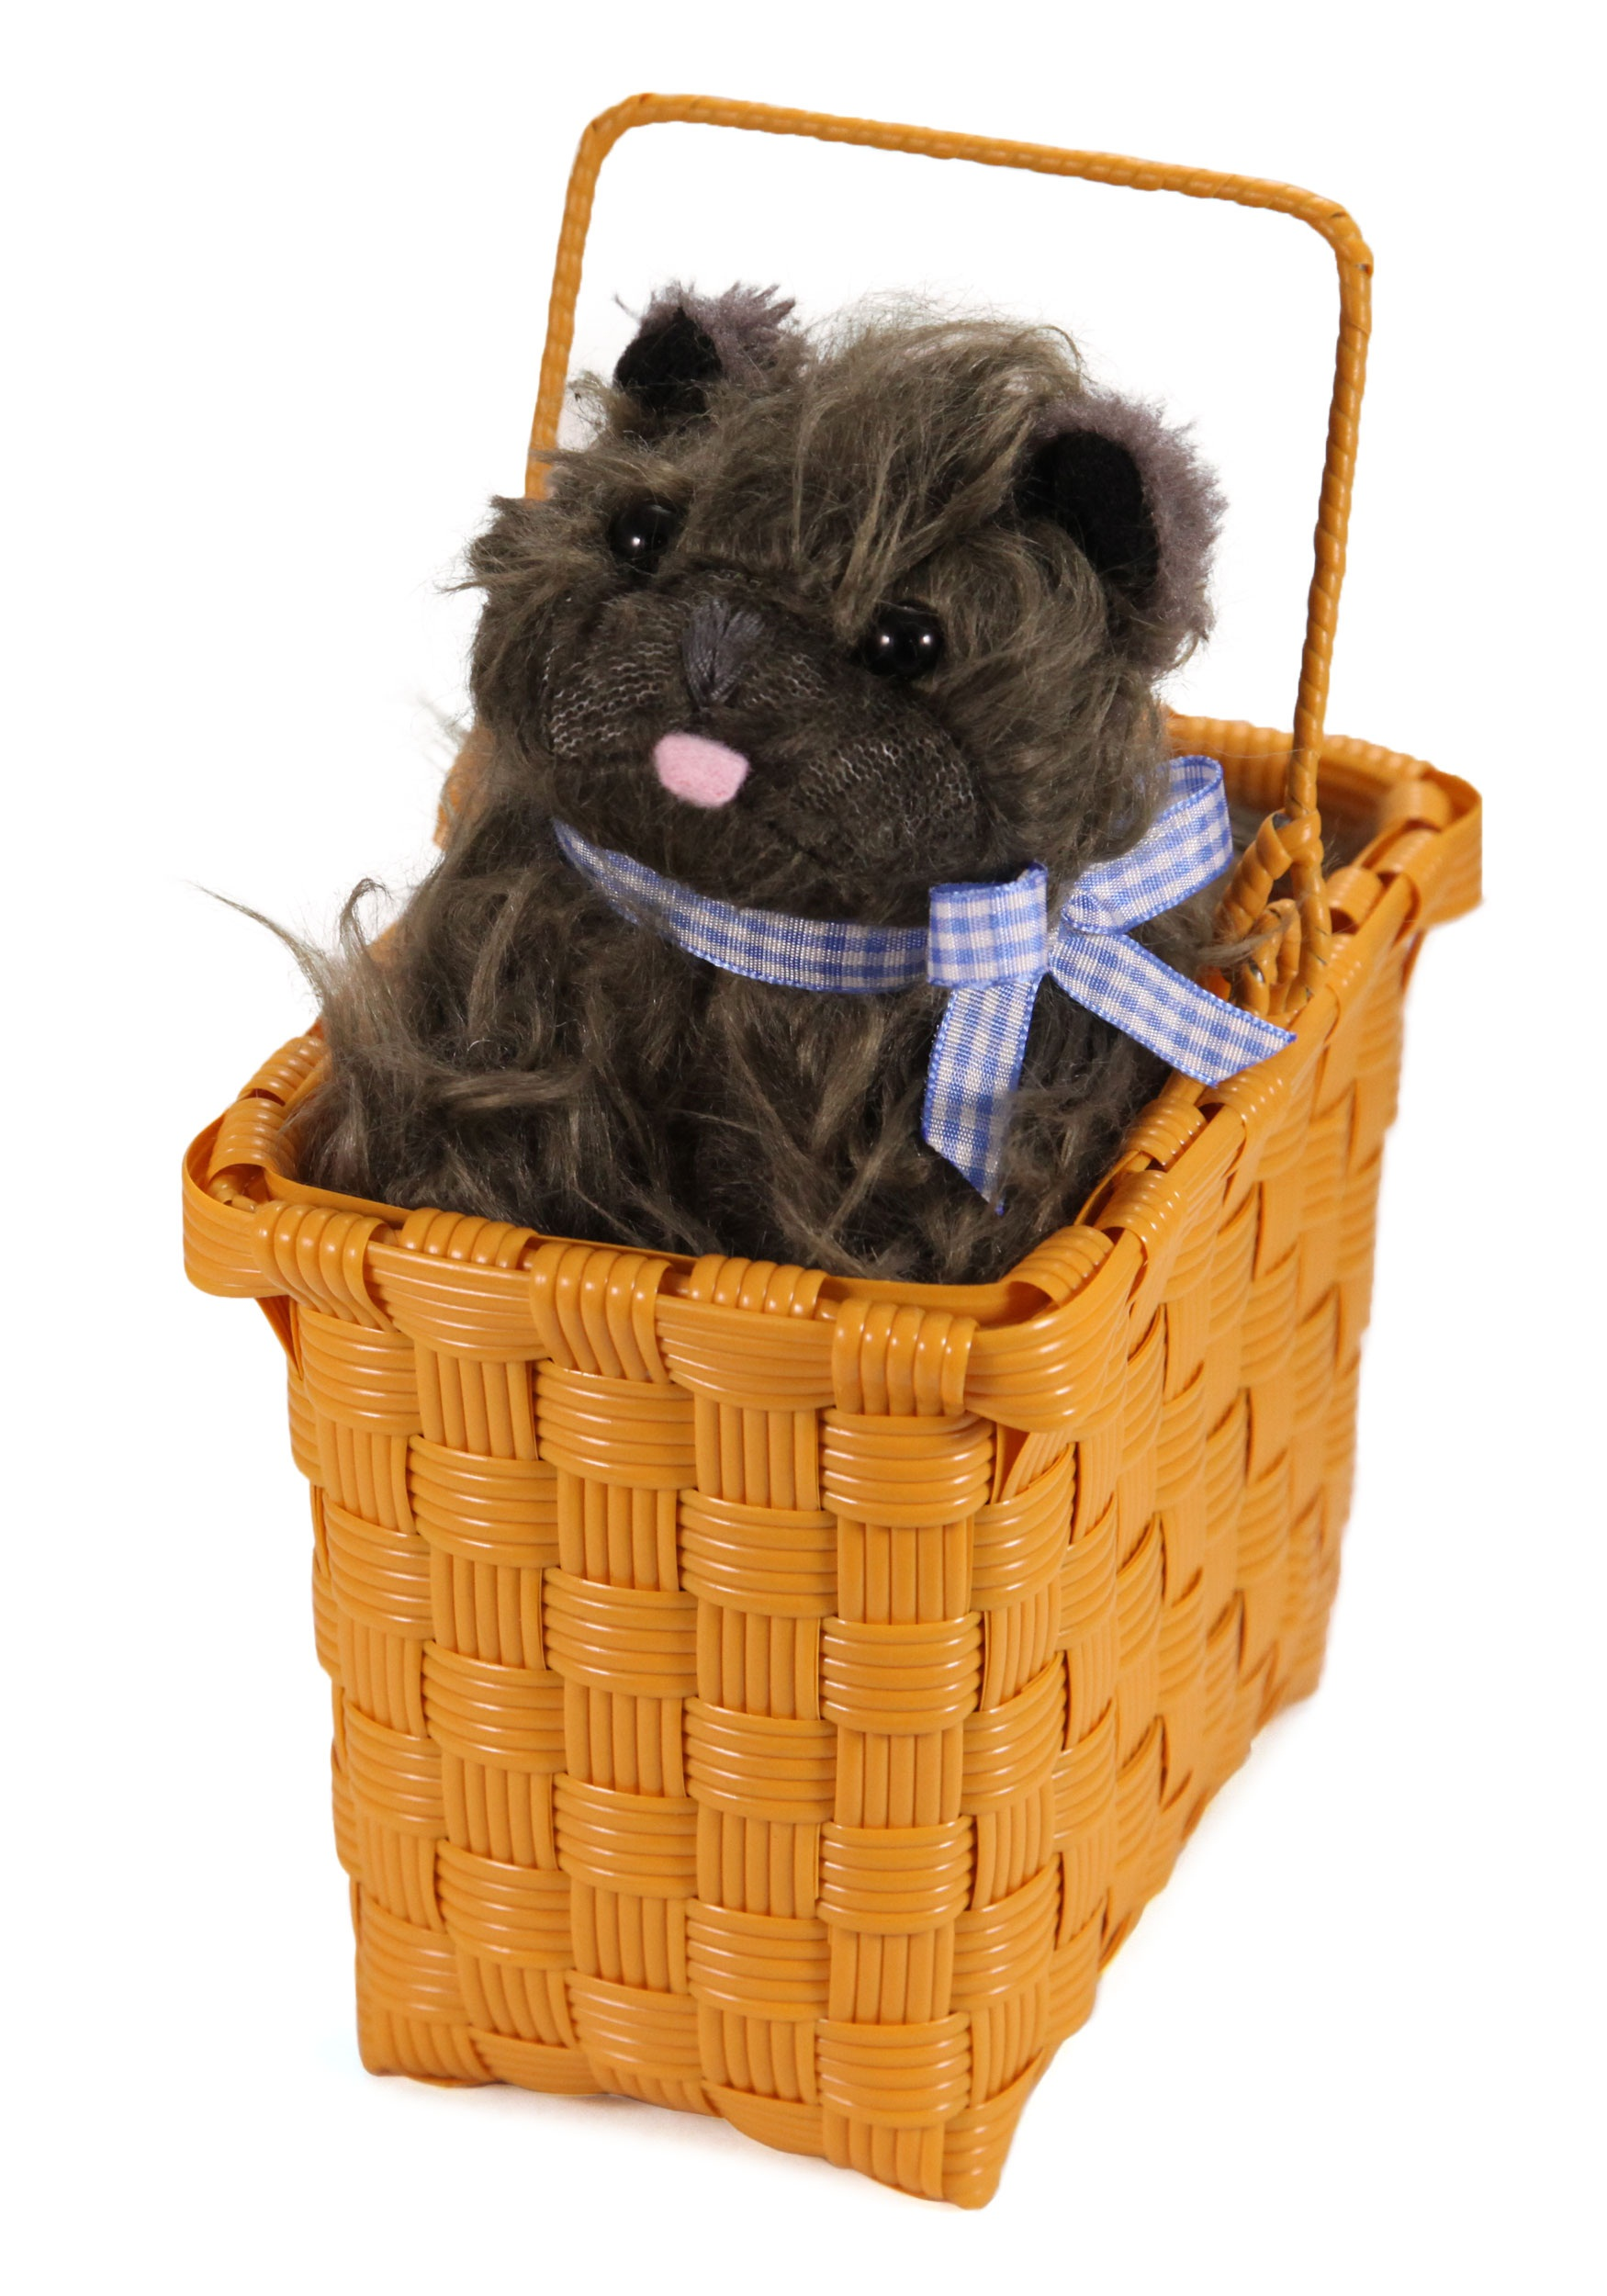 Toto in the Basket - Halloween Costumes